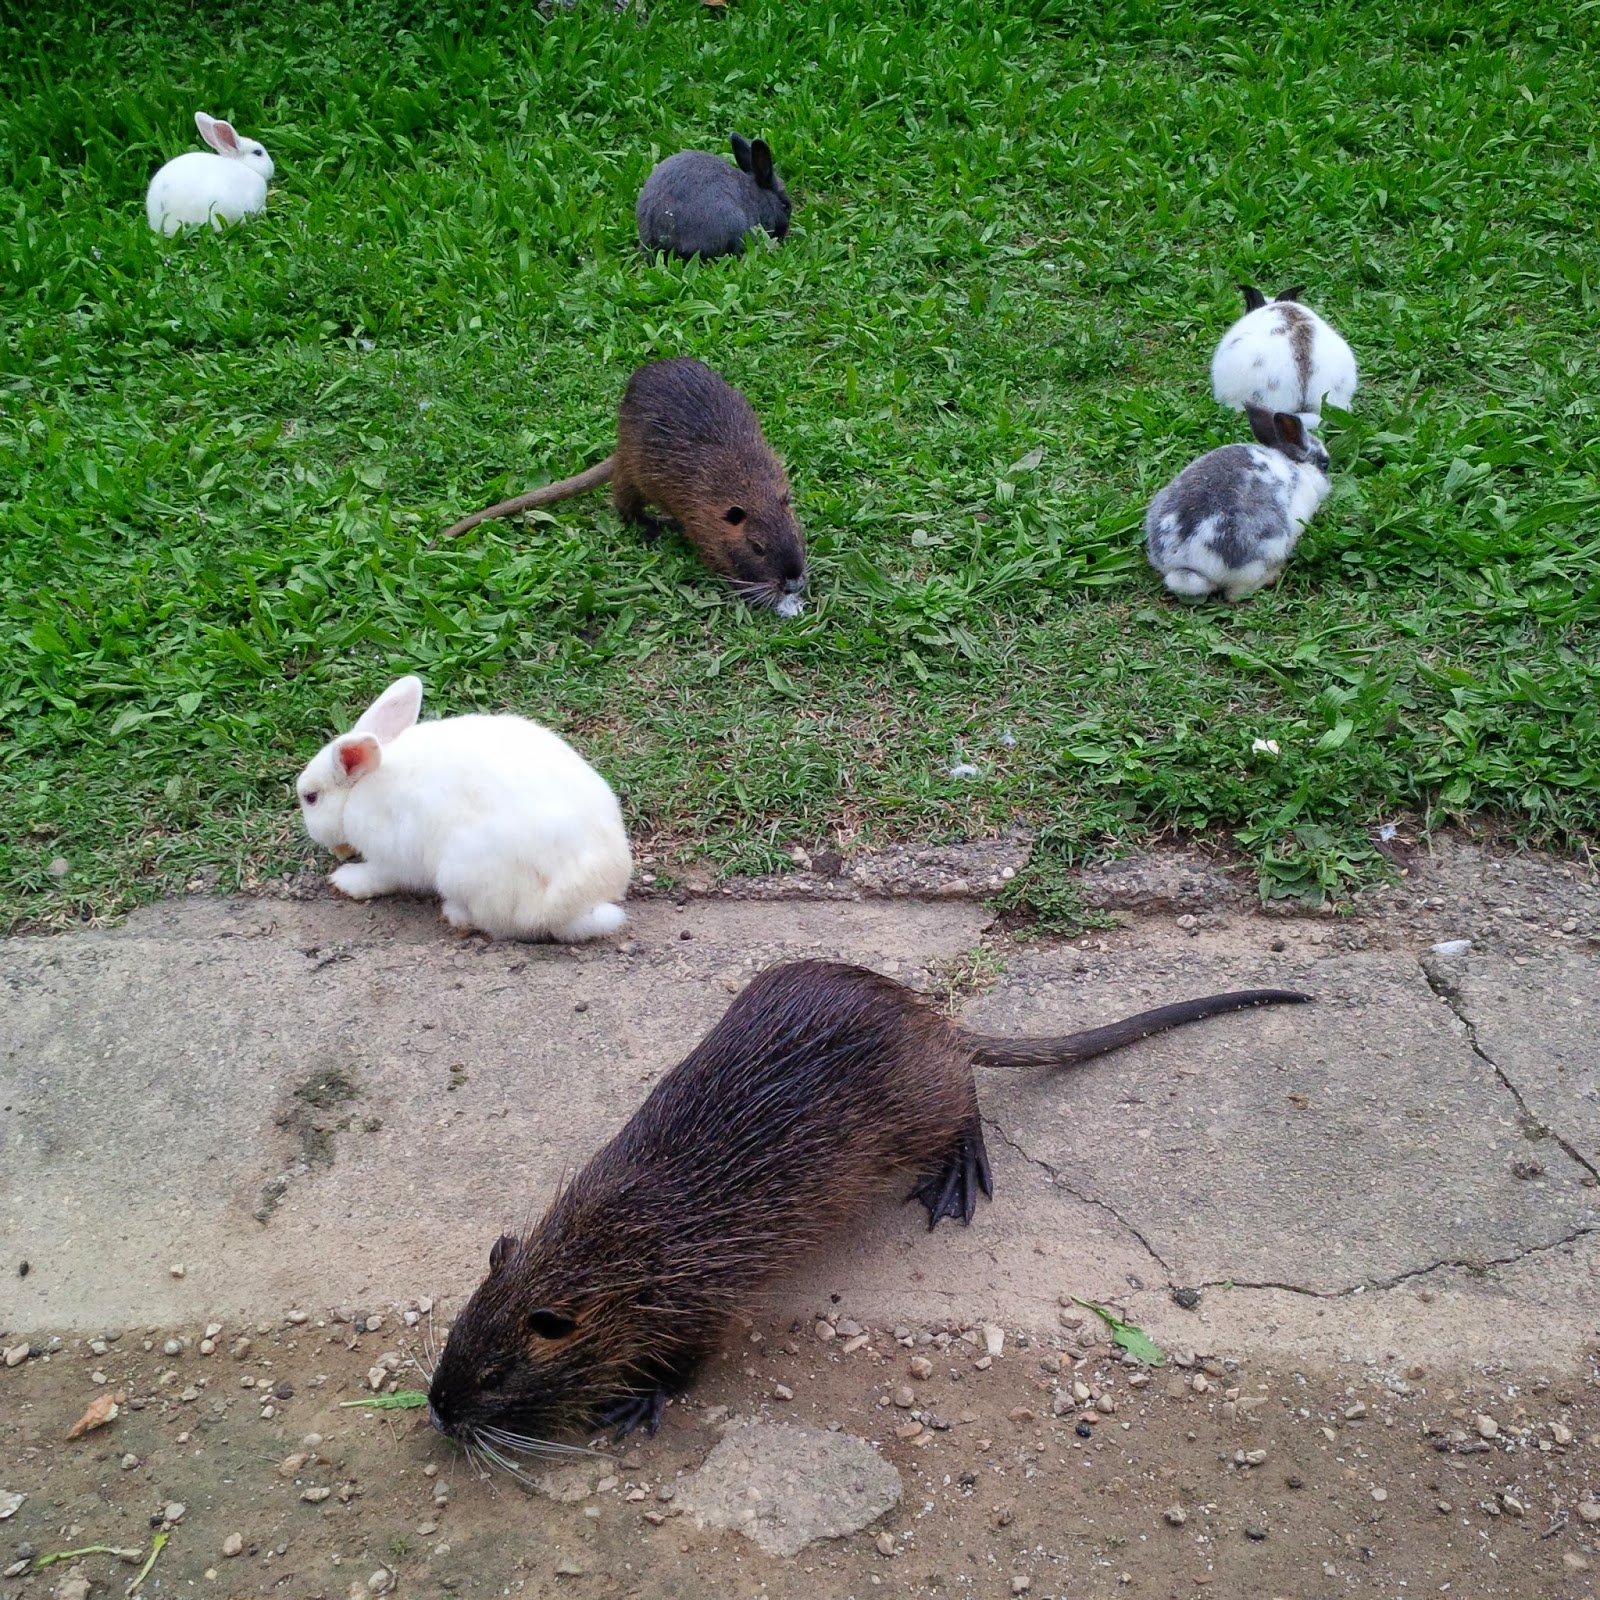 Rabbits and a nutria feast together in Parco Querini in Vicenza